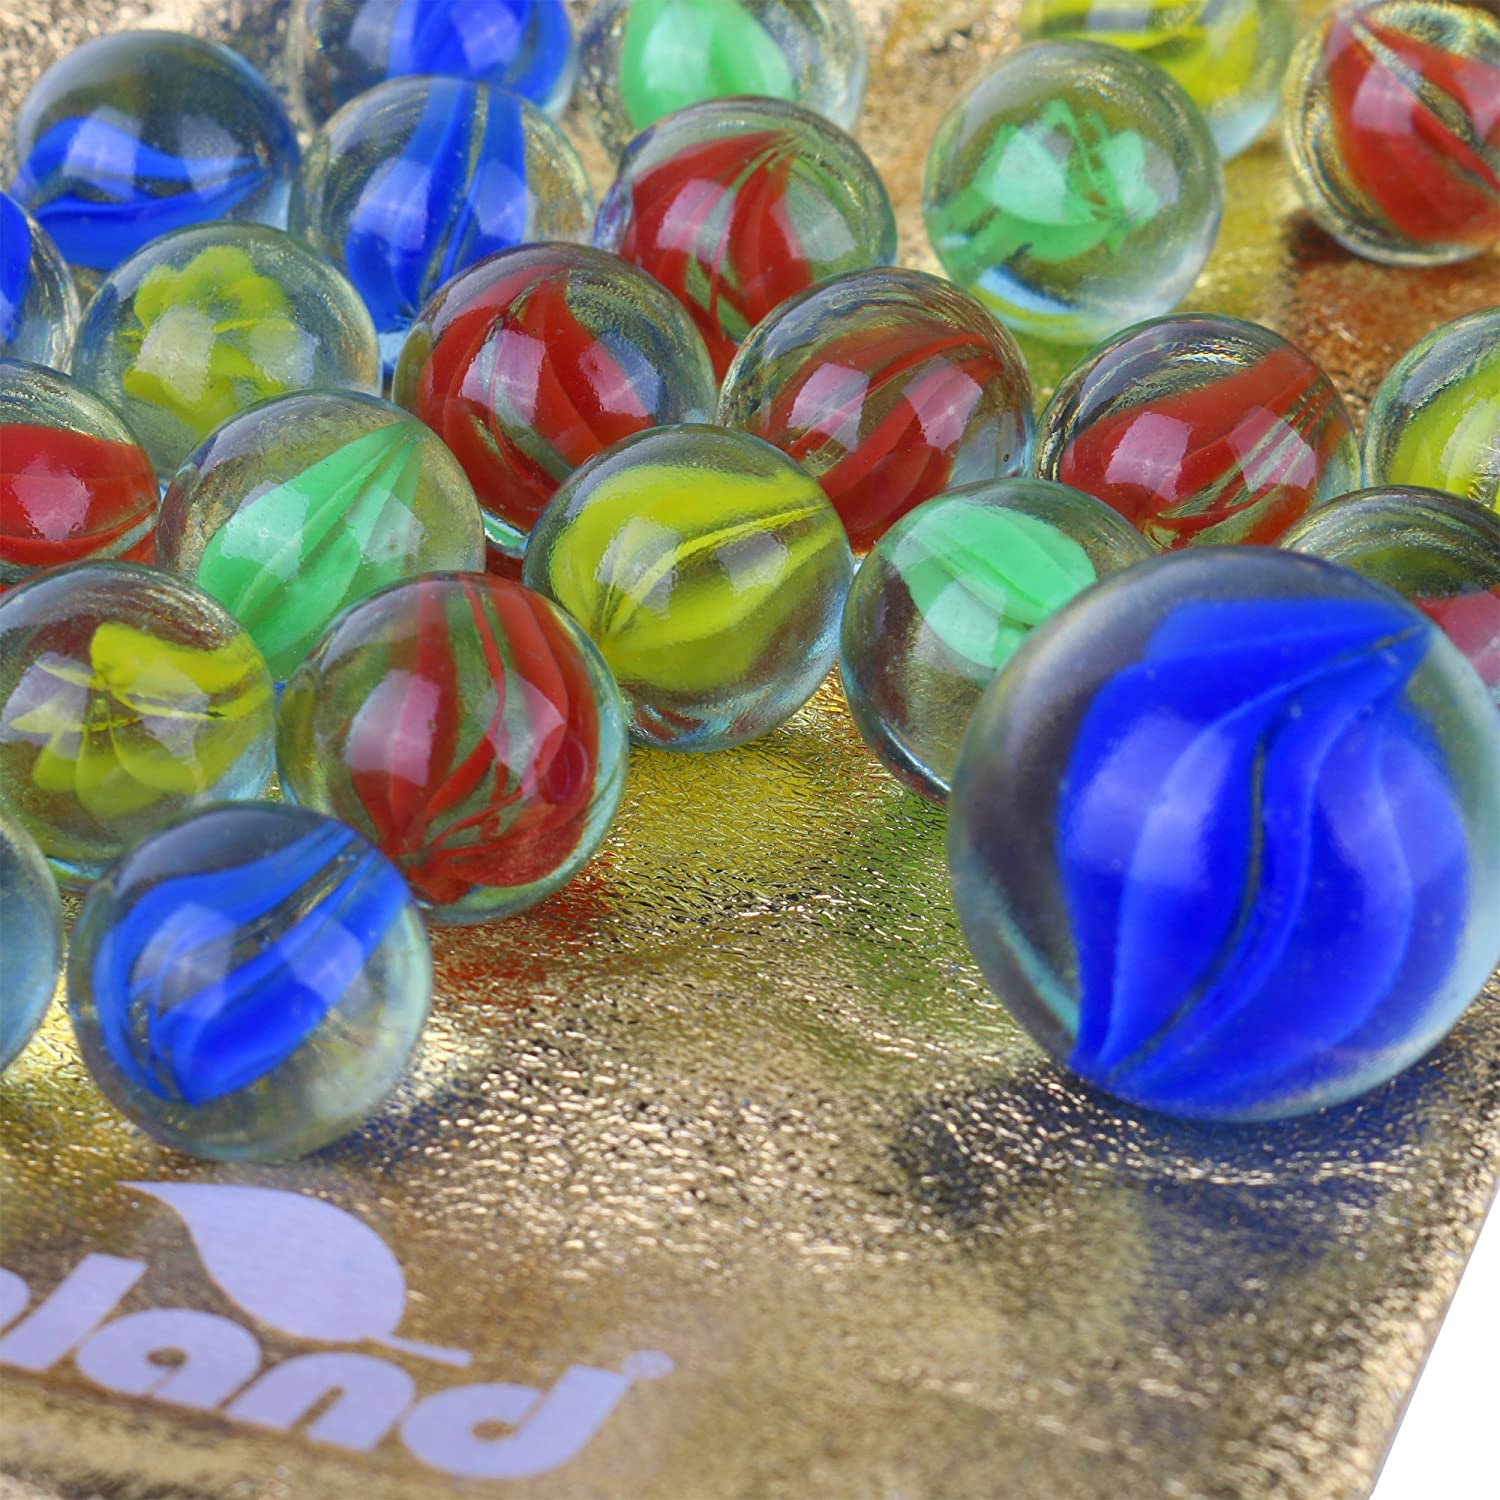 40 Pieces Cats Eyes Glass Marbles Sling Shot Ammo Assorted Colors with a Free Bonus Shooter Marble and Velvet Drawstring Storage Bag